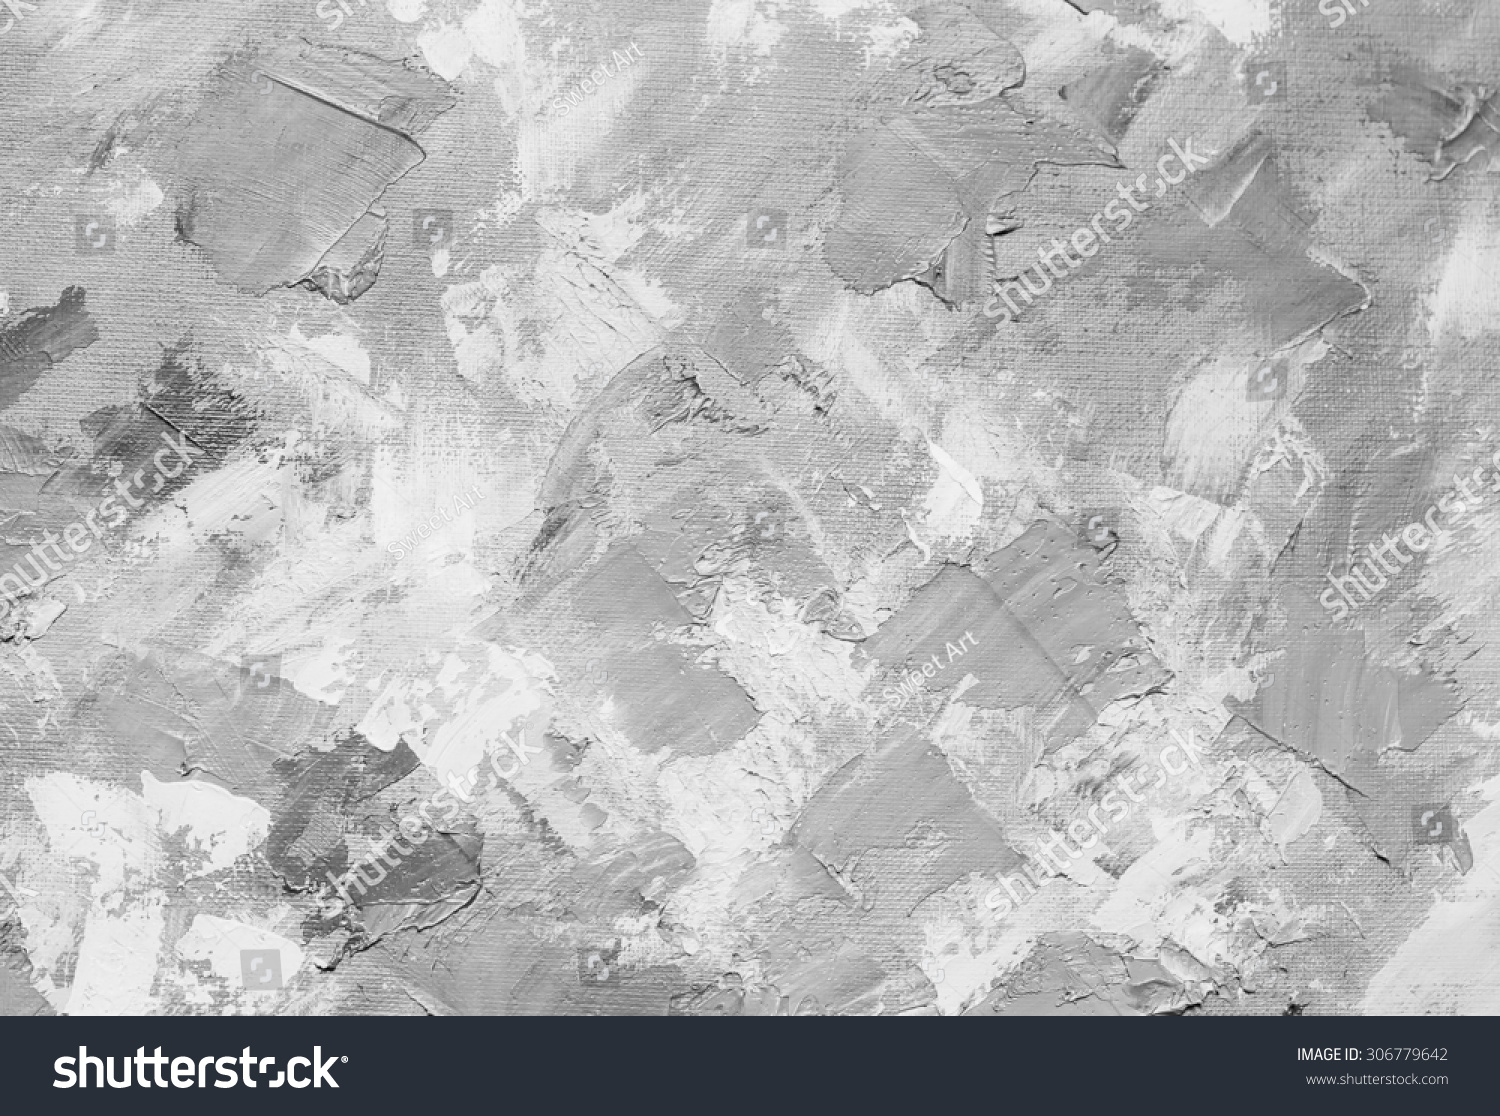 Oil Paint Texture Grunge Black White Stock Illustration 306779642